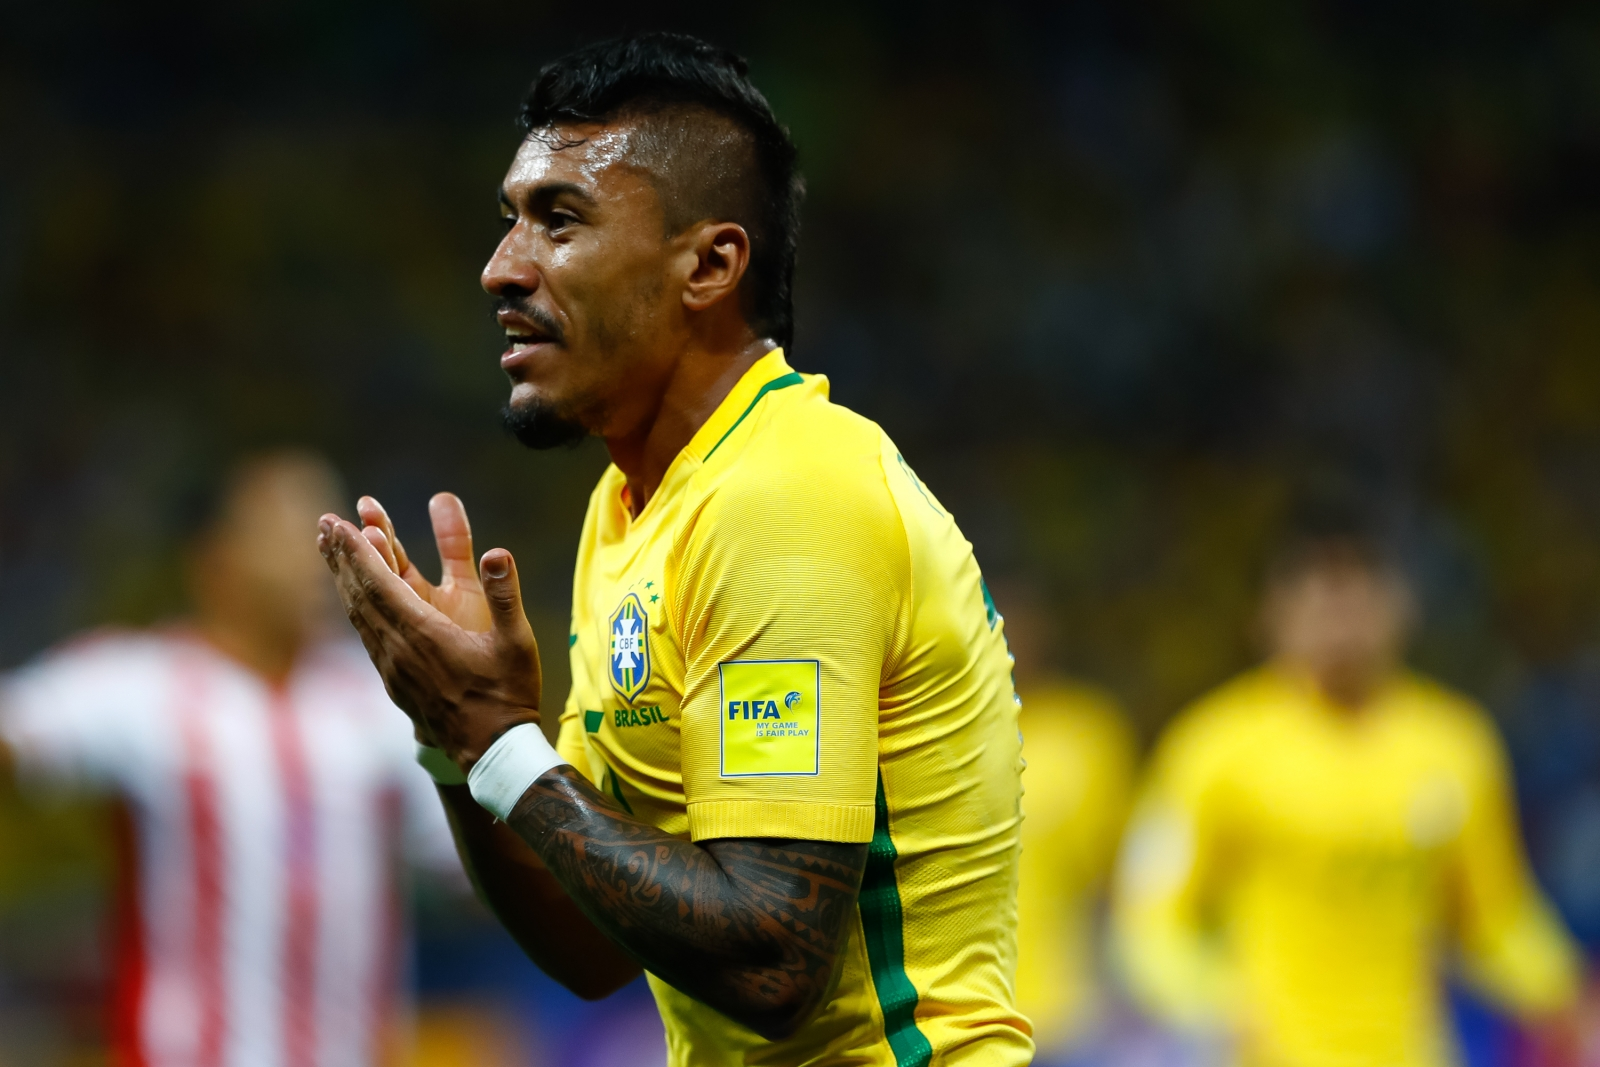 Guangzhou's Paulinho hopes to make Barcelona move 'this week'